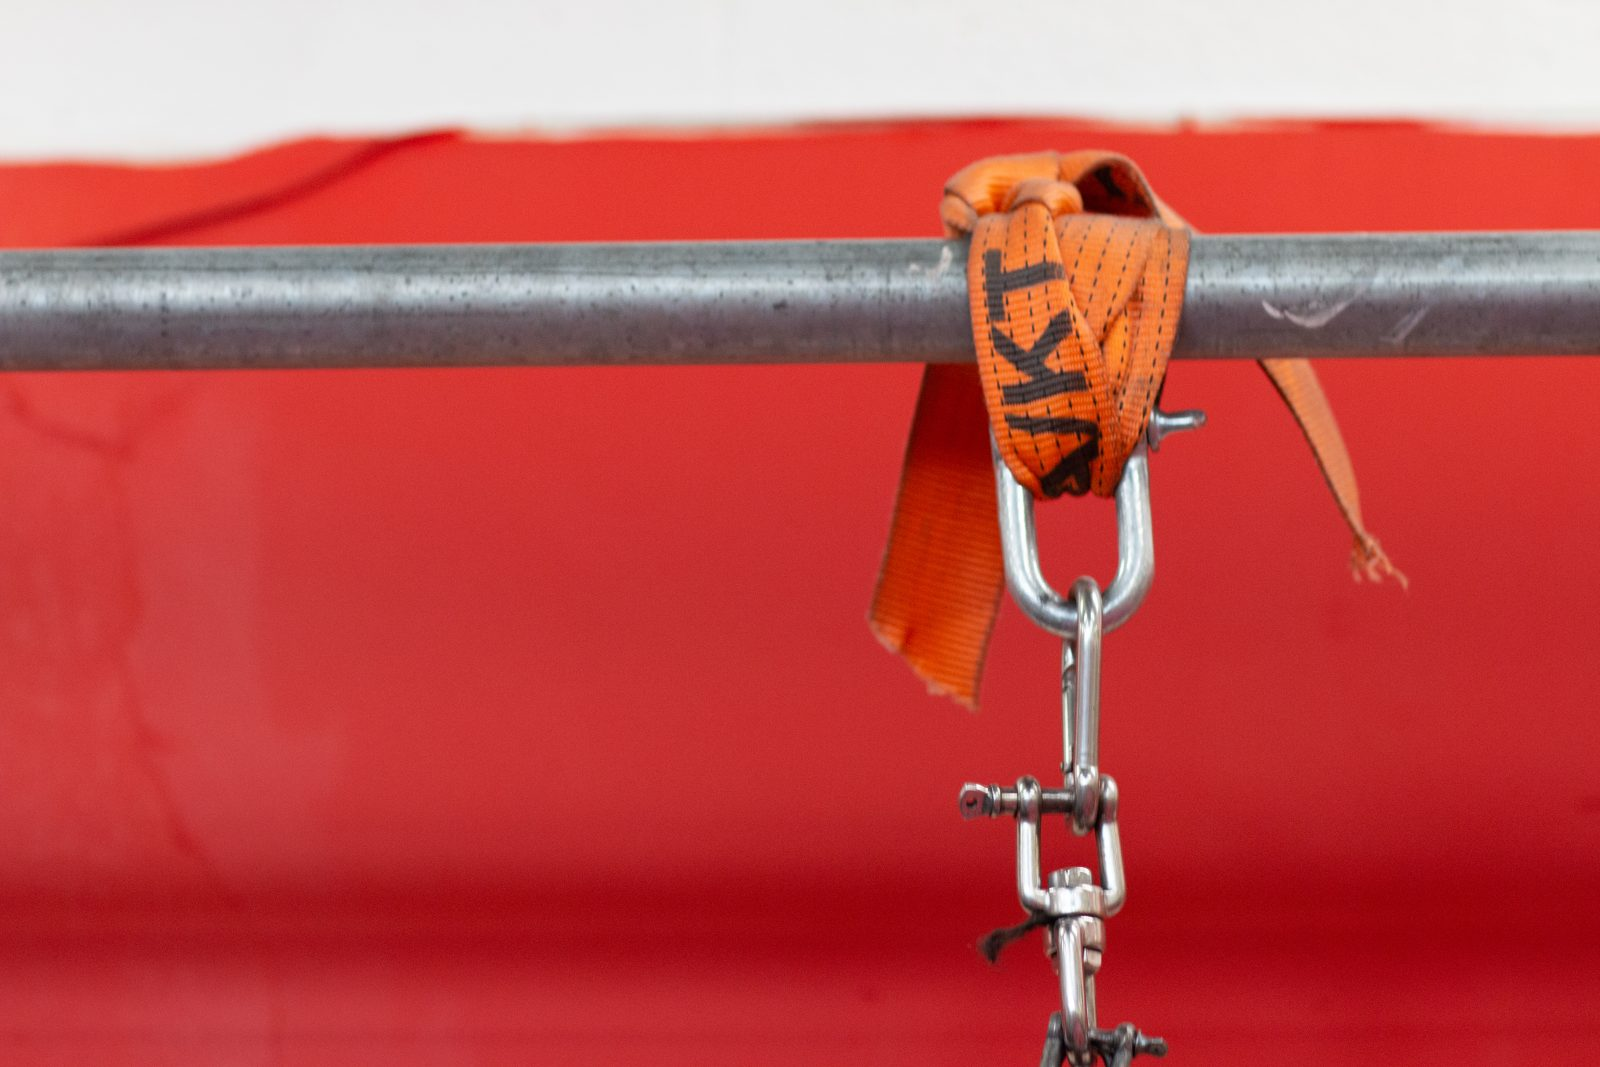 A metal bar against a red and white background. An orange strap is wrapped around the bar with a carabiner attached.